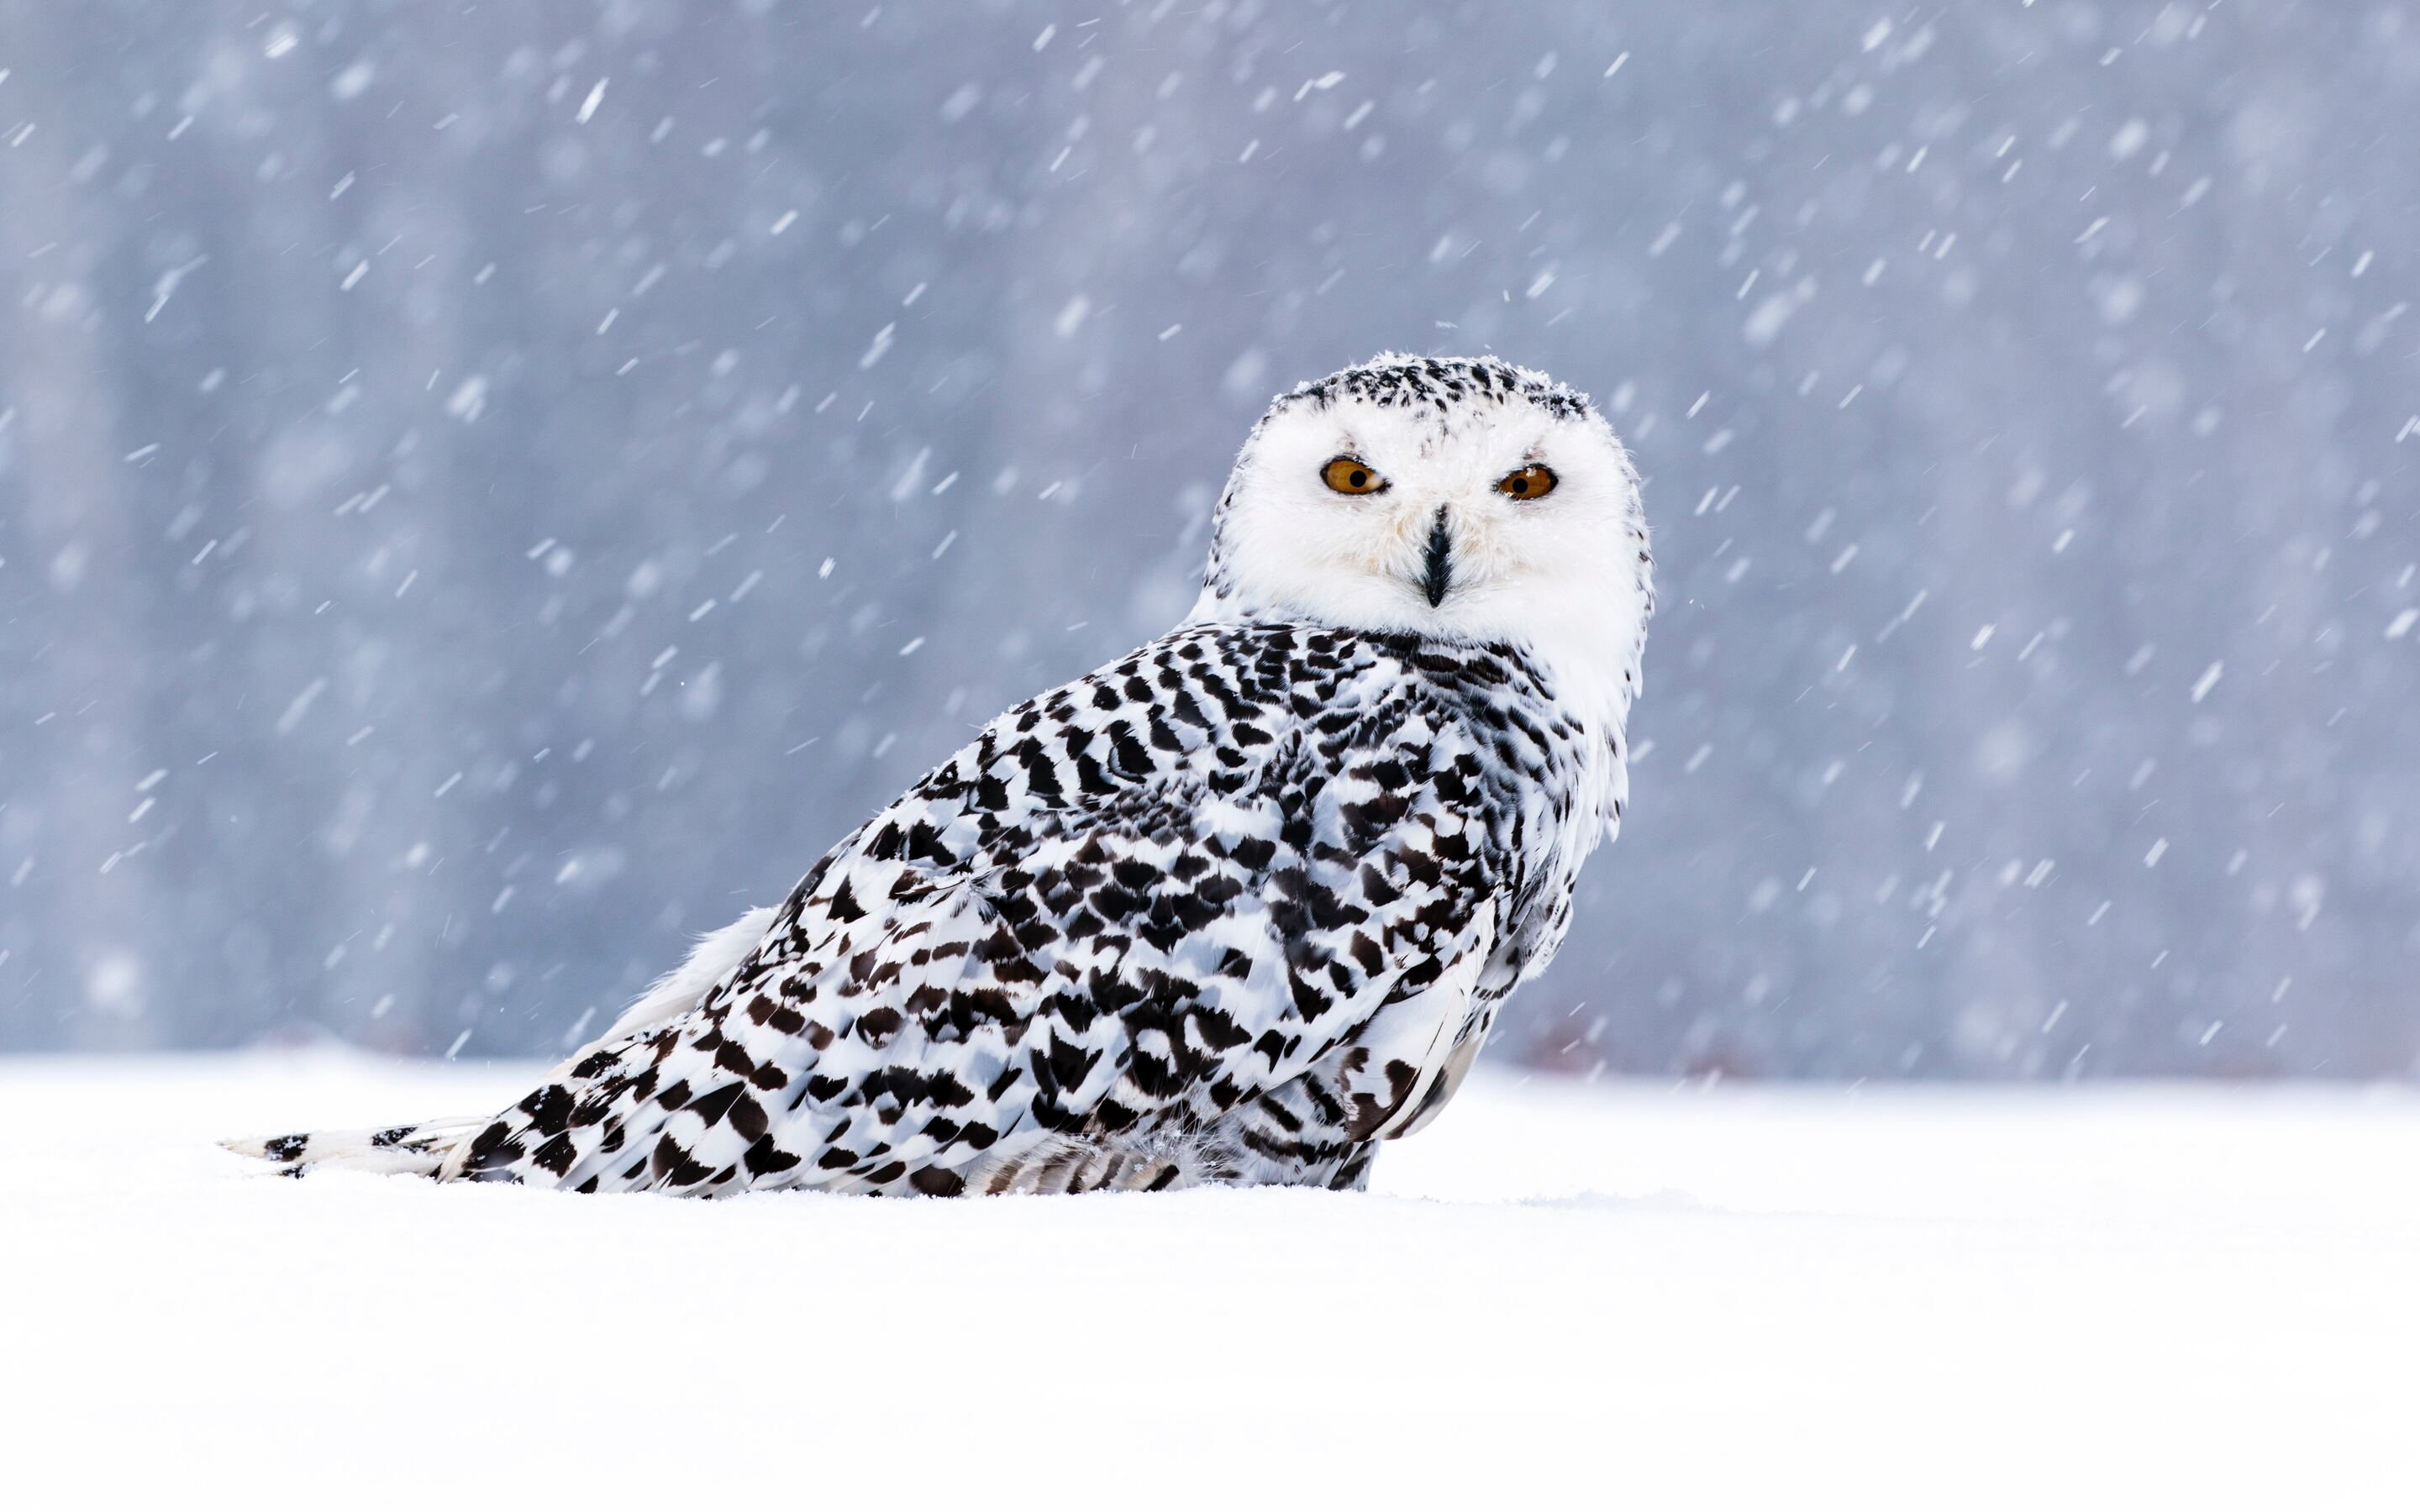 white-owl-in-snow-5k-c3.jpg